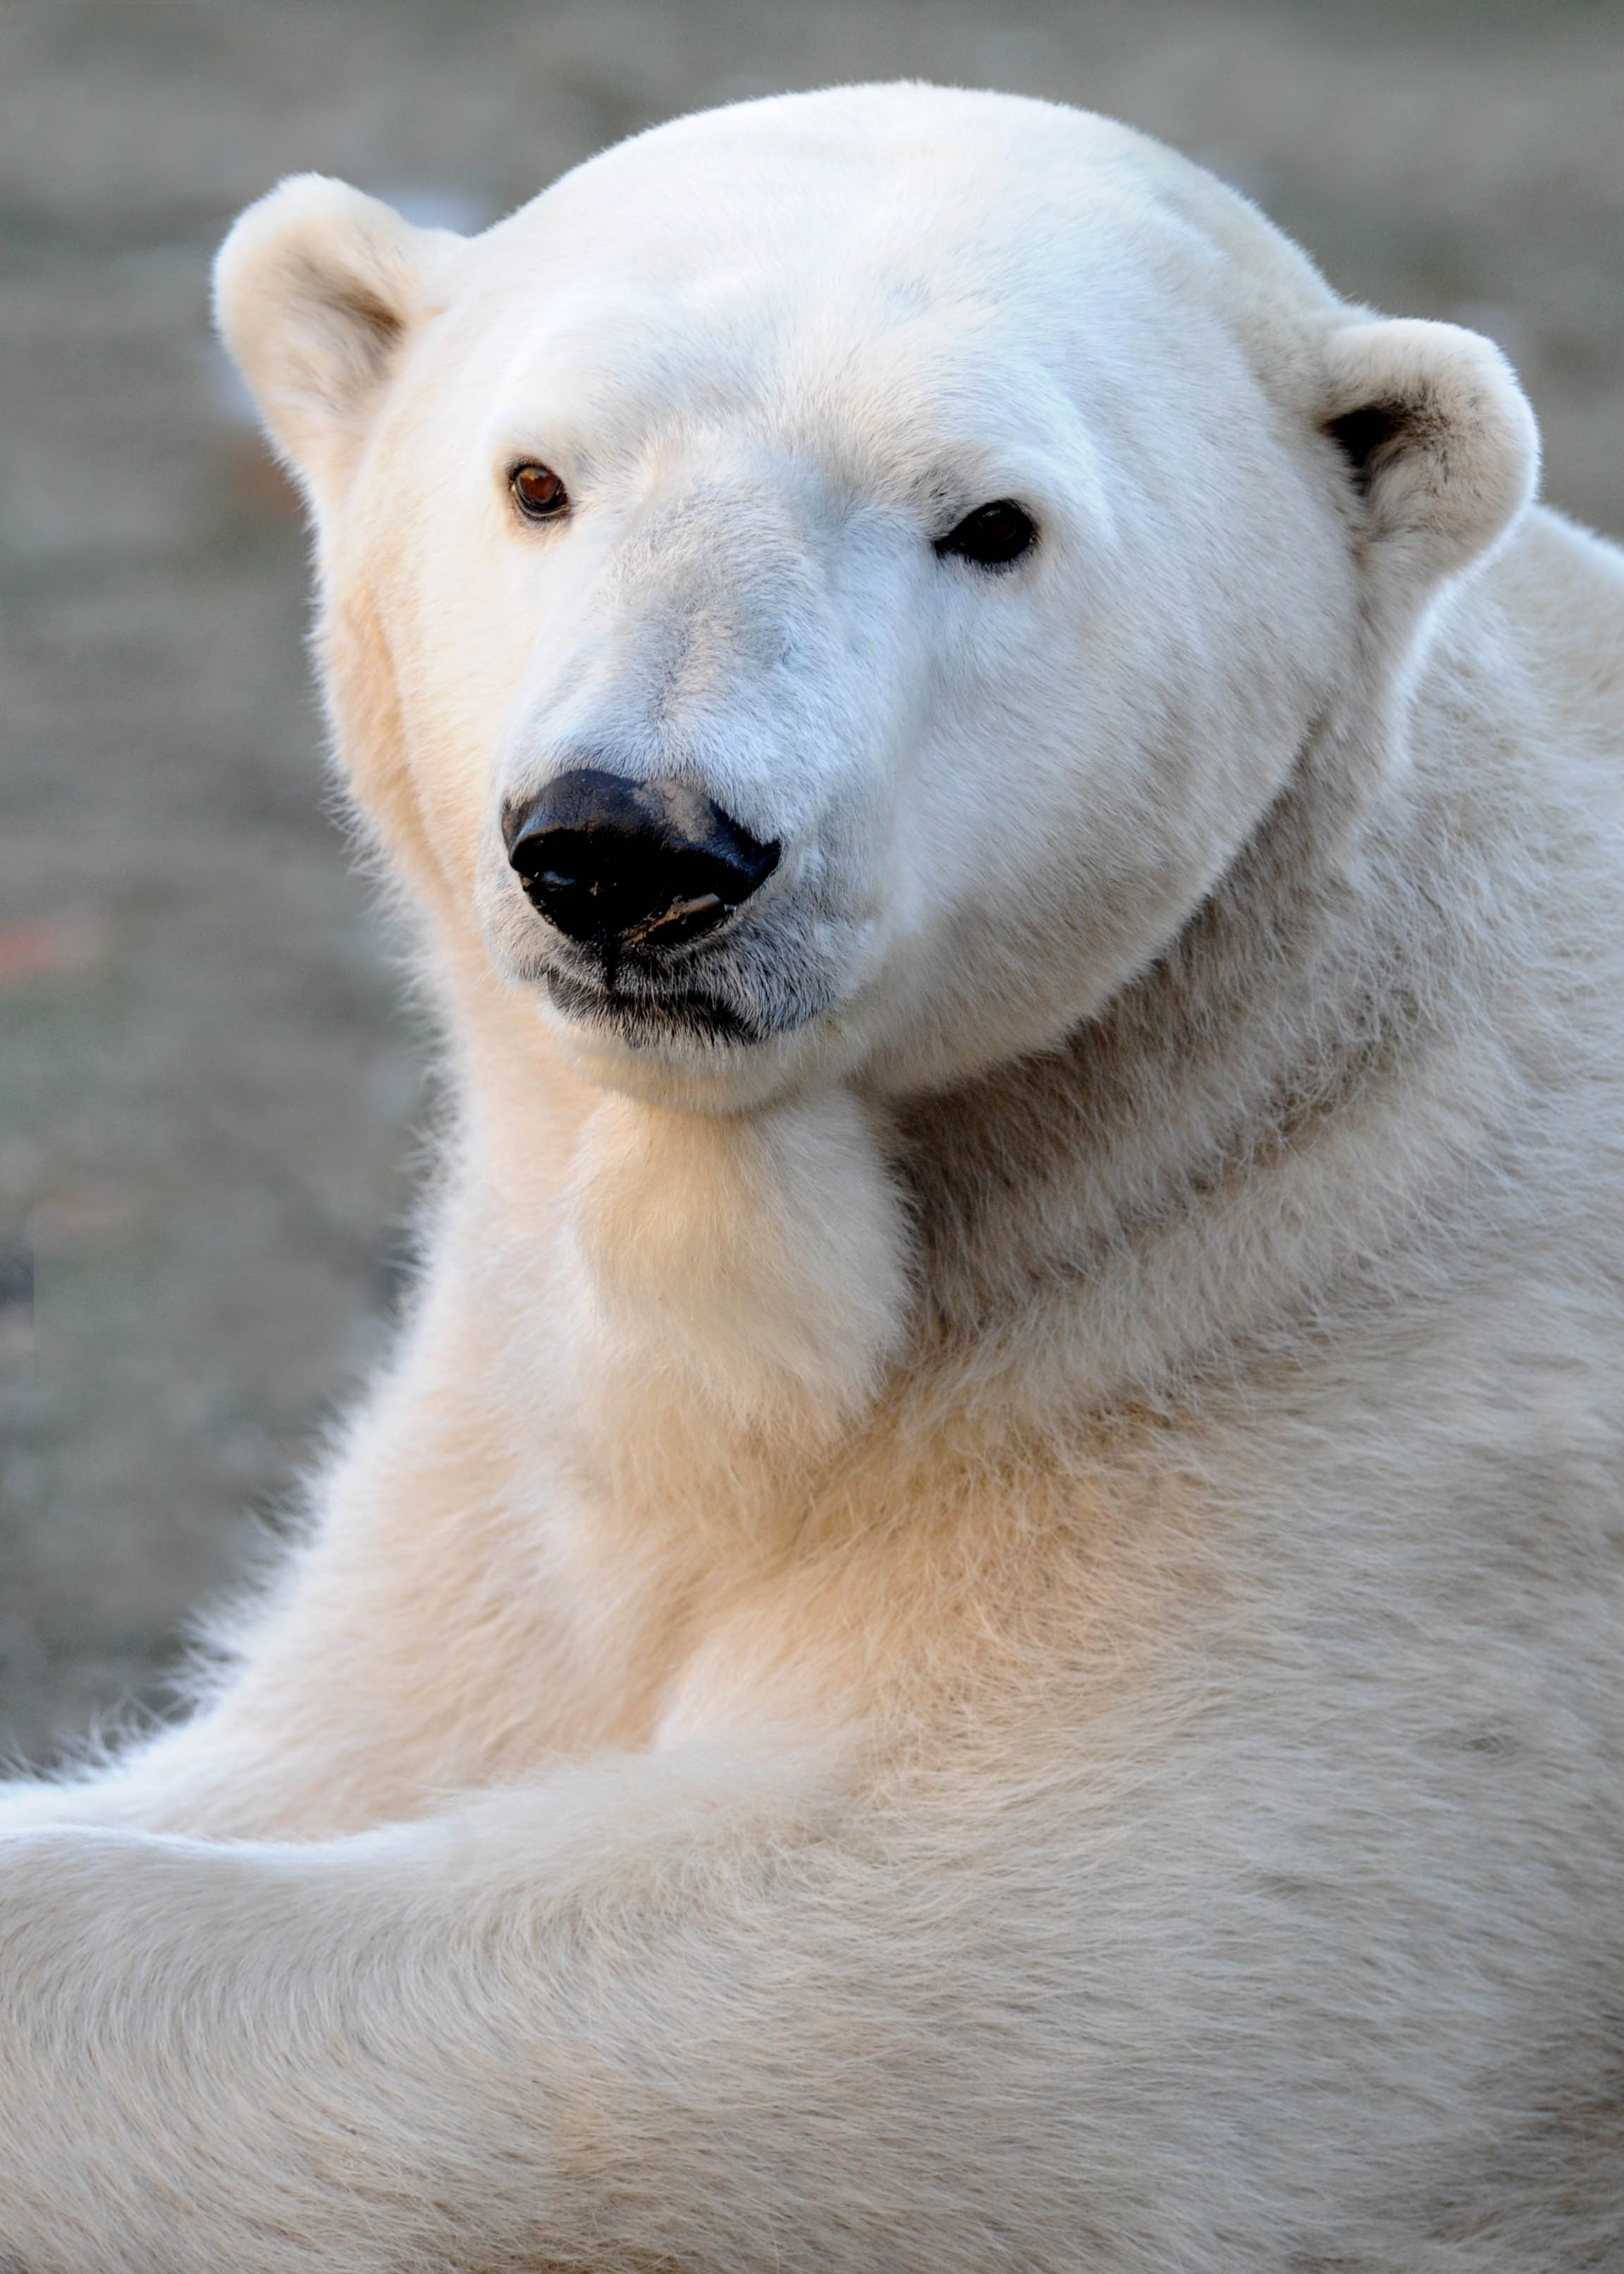 "<div class=""meta image-caption""><div class=""origin-logo origin-image wls""><span>WLS</span></div><span class=""caption-text"">Aussie the polar bear. (Brookfield Zoo.)</span></div>"